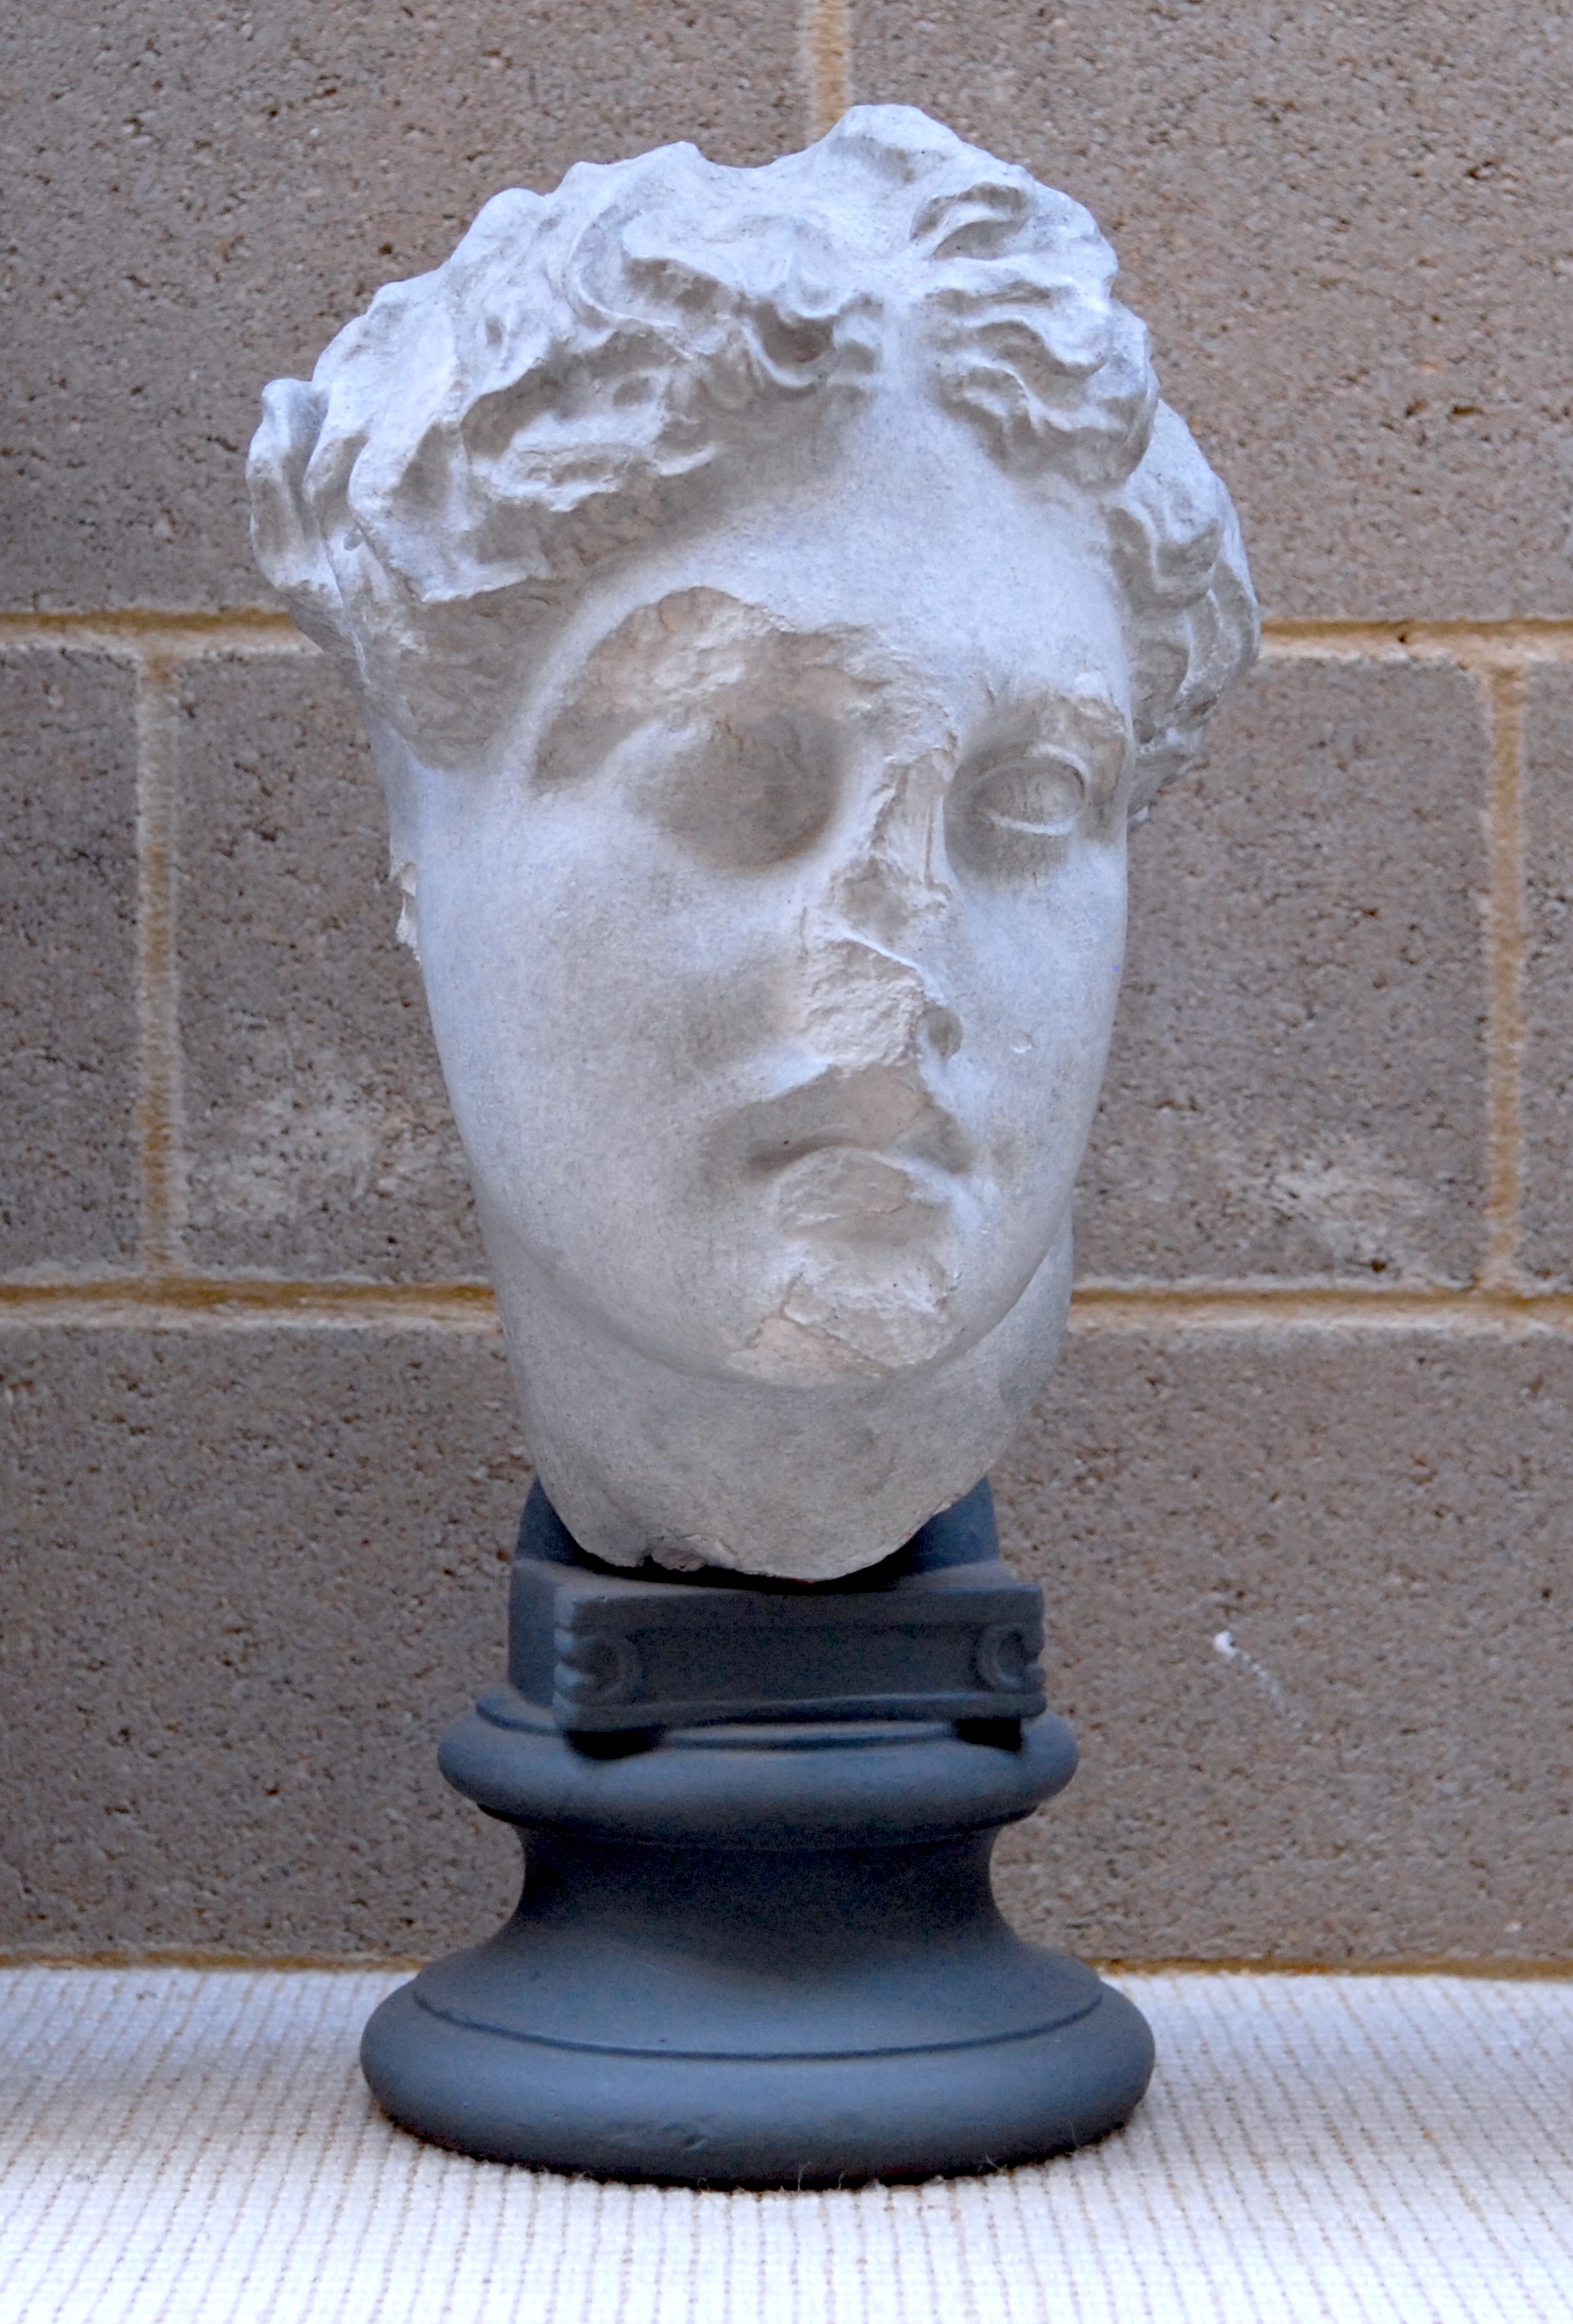 sculpted head of apollo, head bent to one side, with hair in little knots on top of head